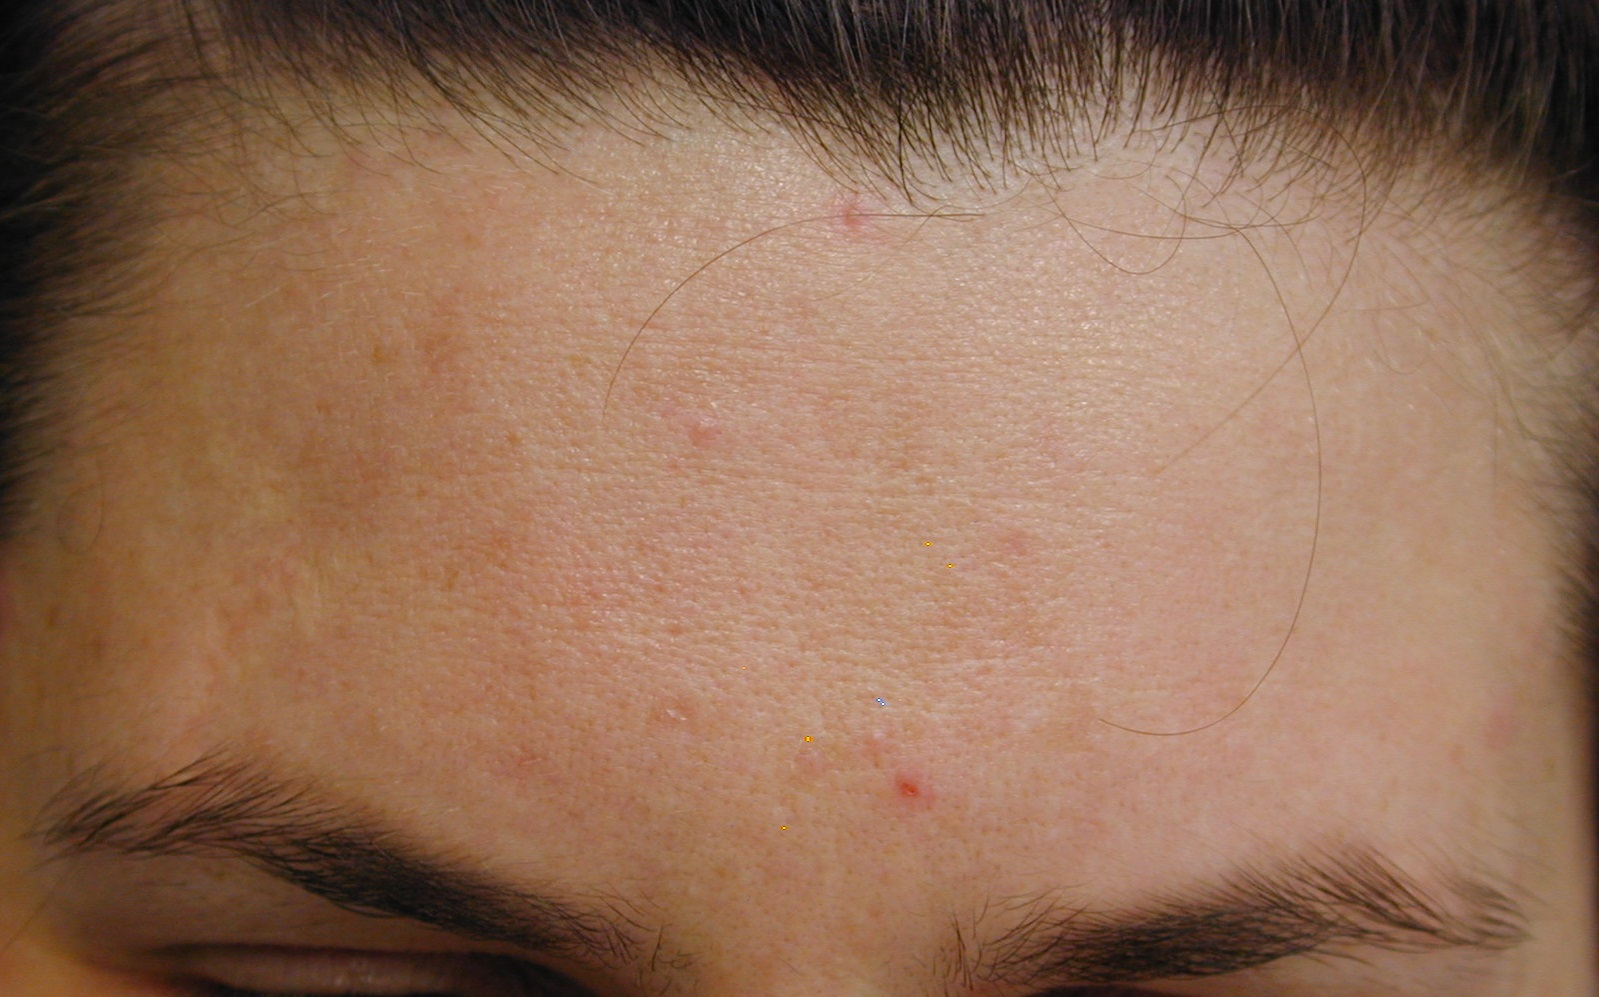 4_acne_despues3PR_cortesia_Dr. Drosner_cortada